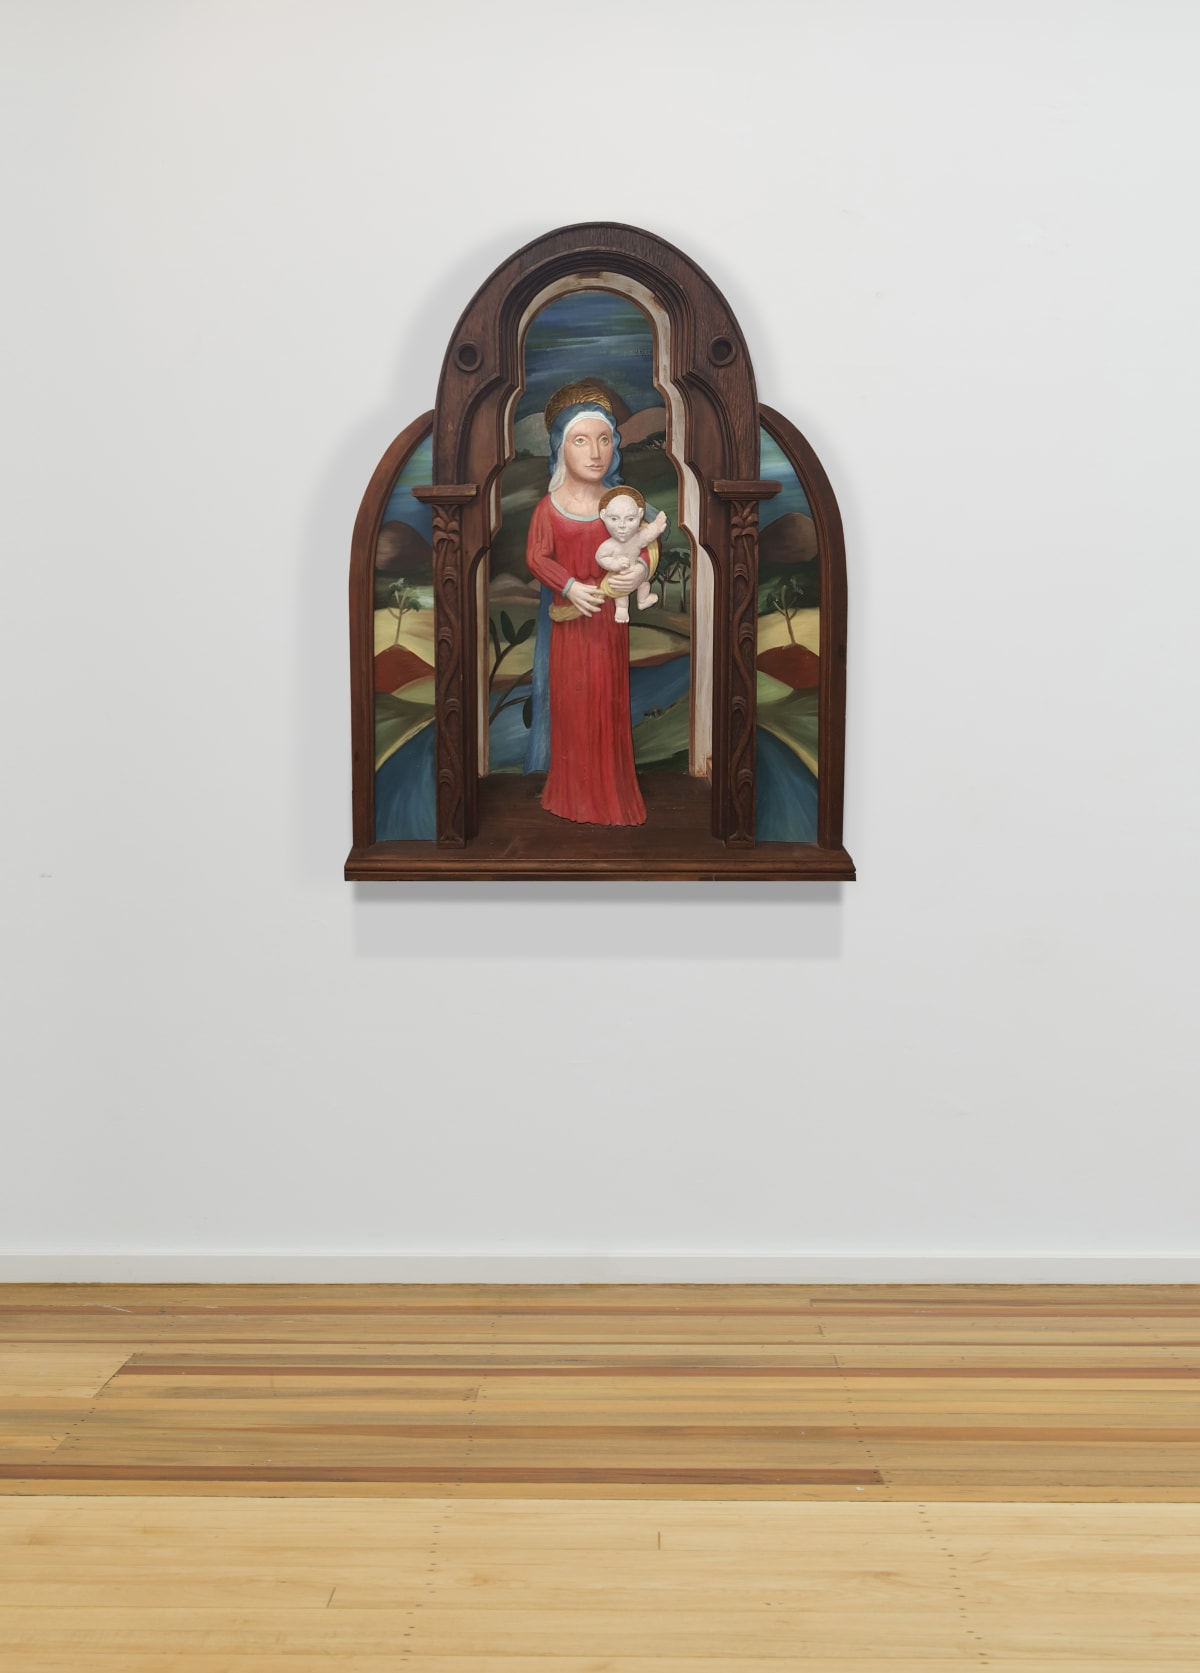 Harry Watson, Untitled [Madonna and Child], 1997